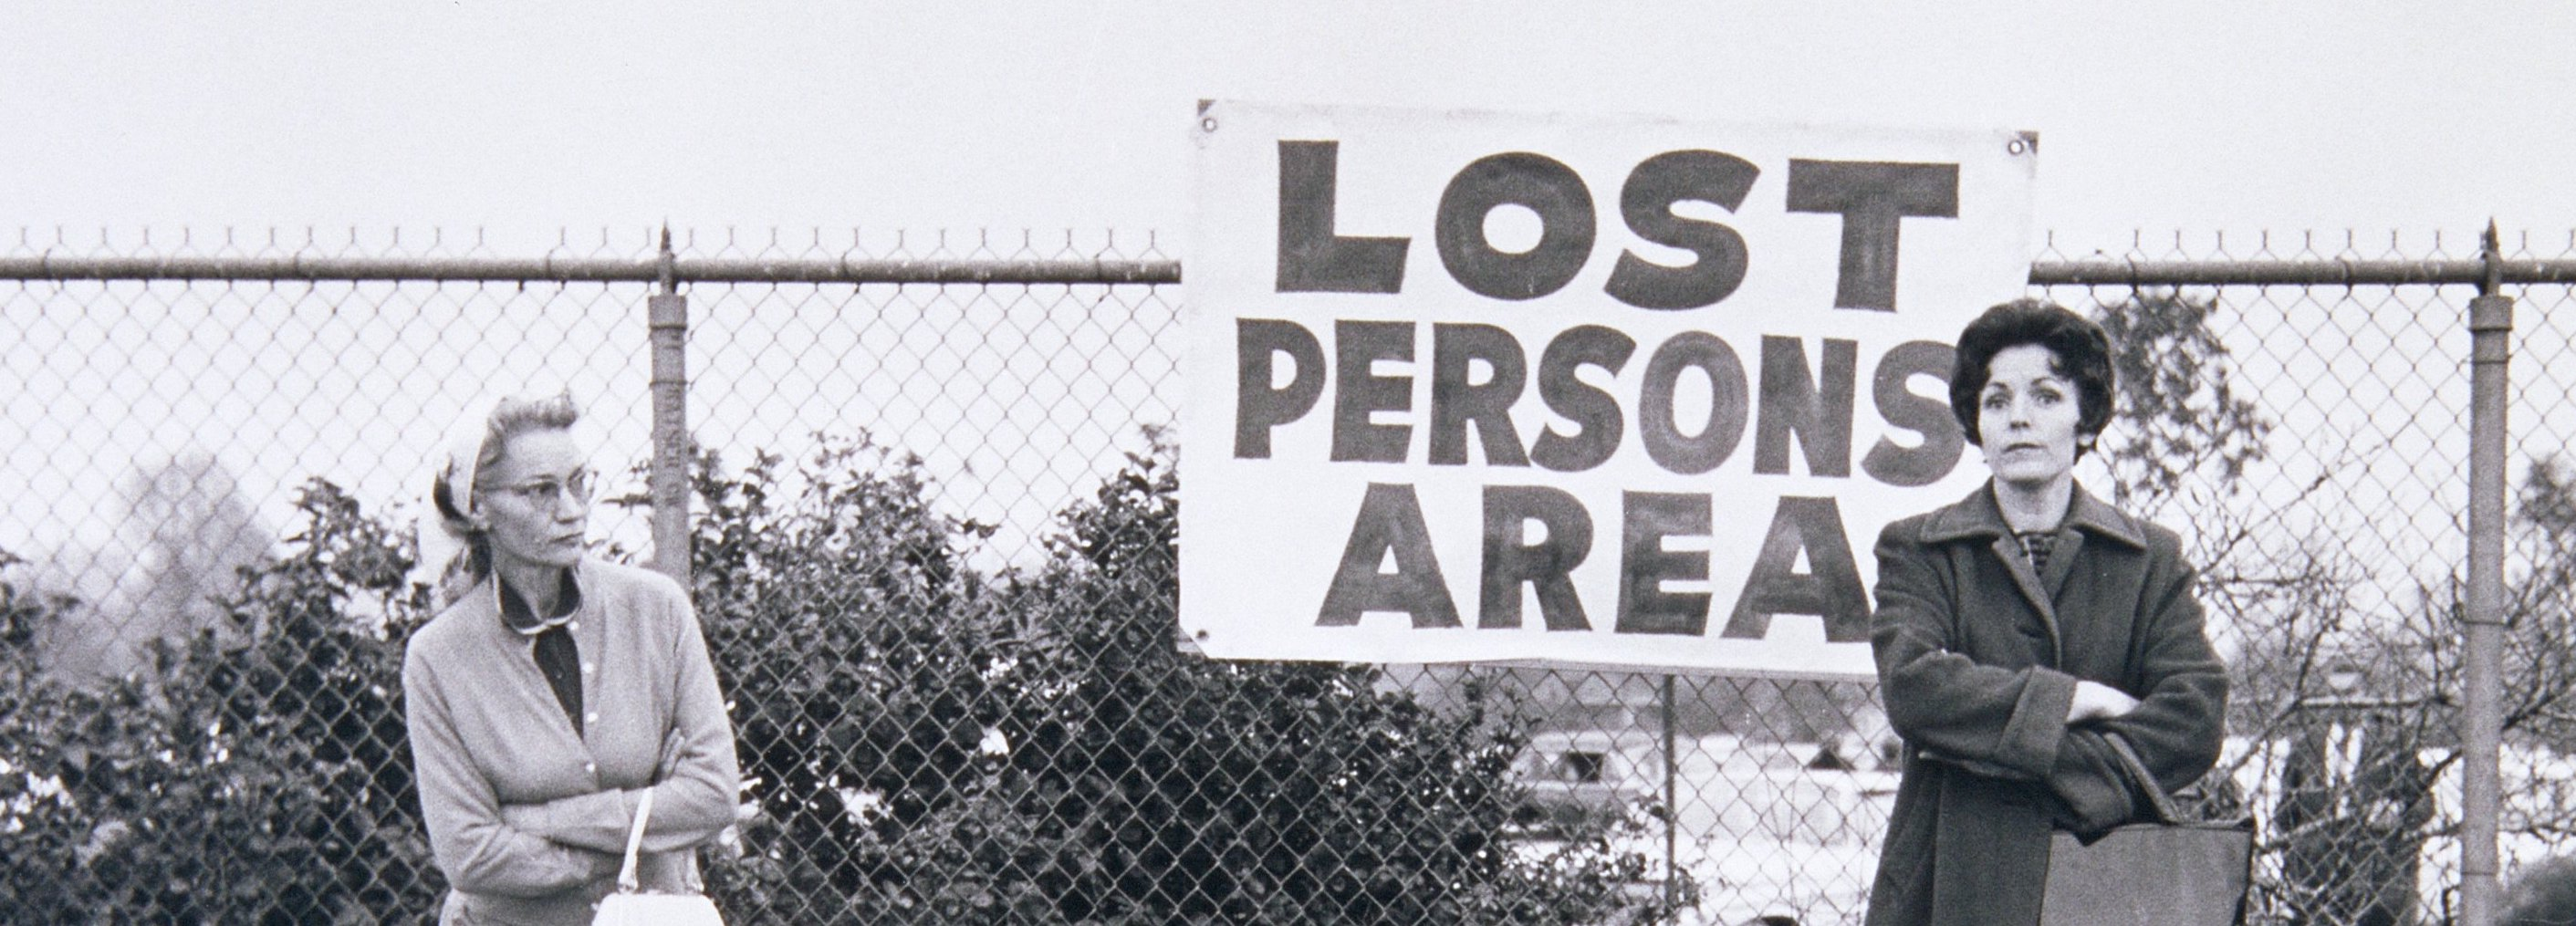 "a black and white photo of several women standing beside a chainlink fence and a handmade sign which reads ""Lost Persons Area"""